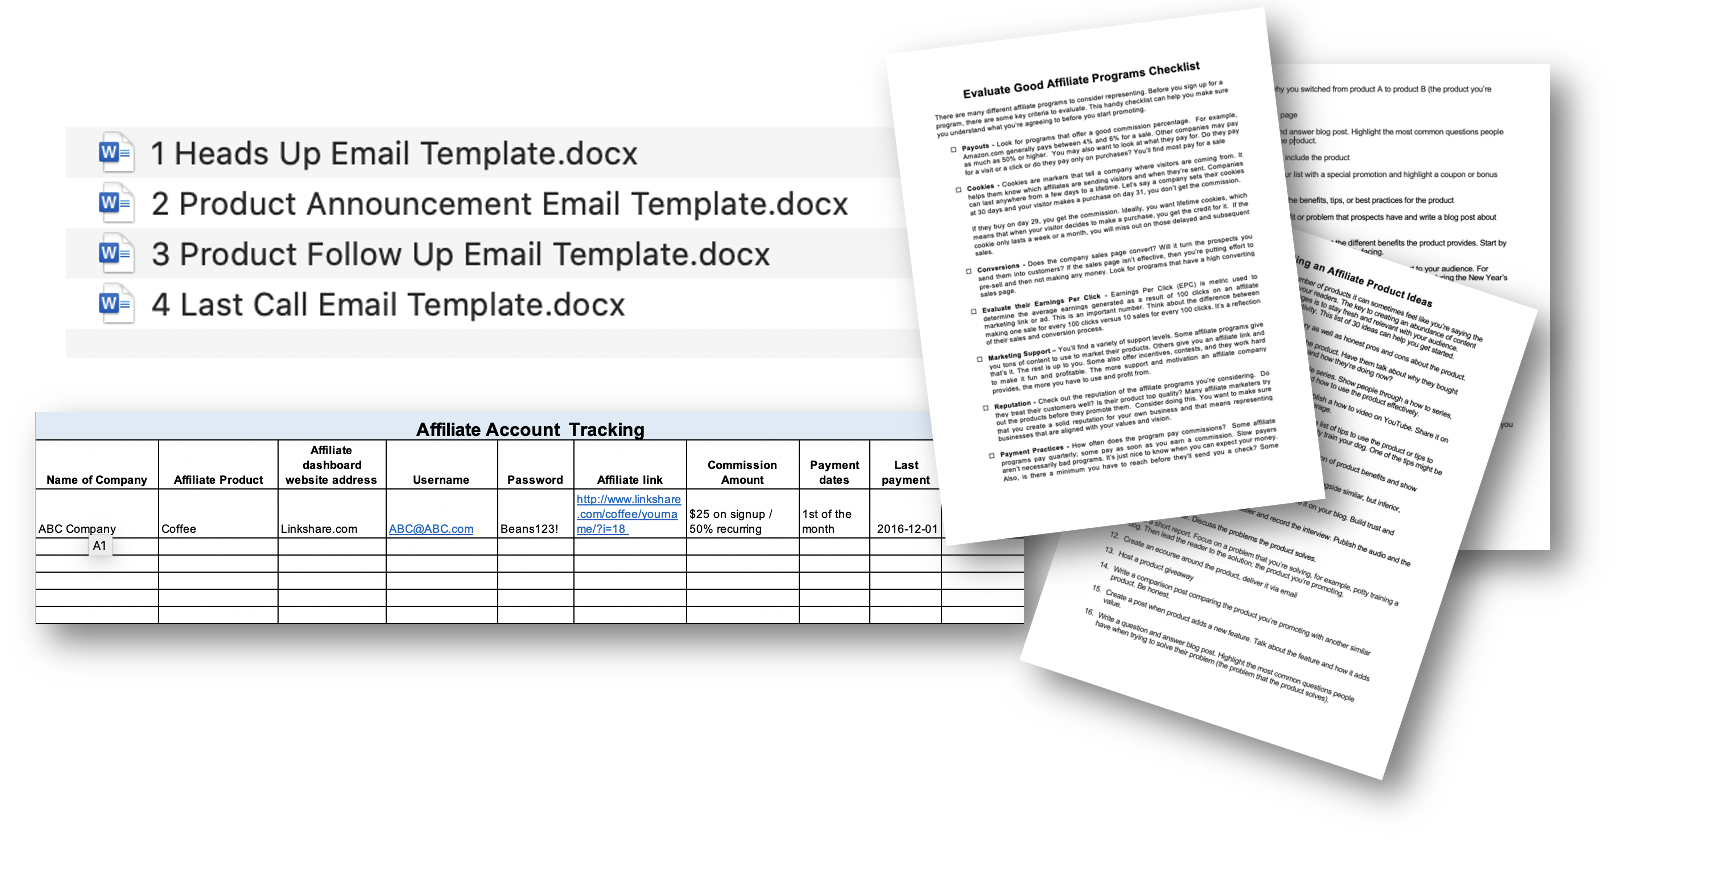 Templates and Checklists Included